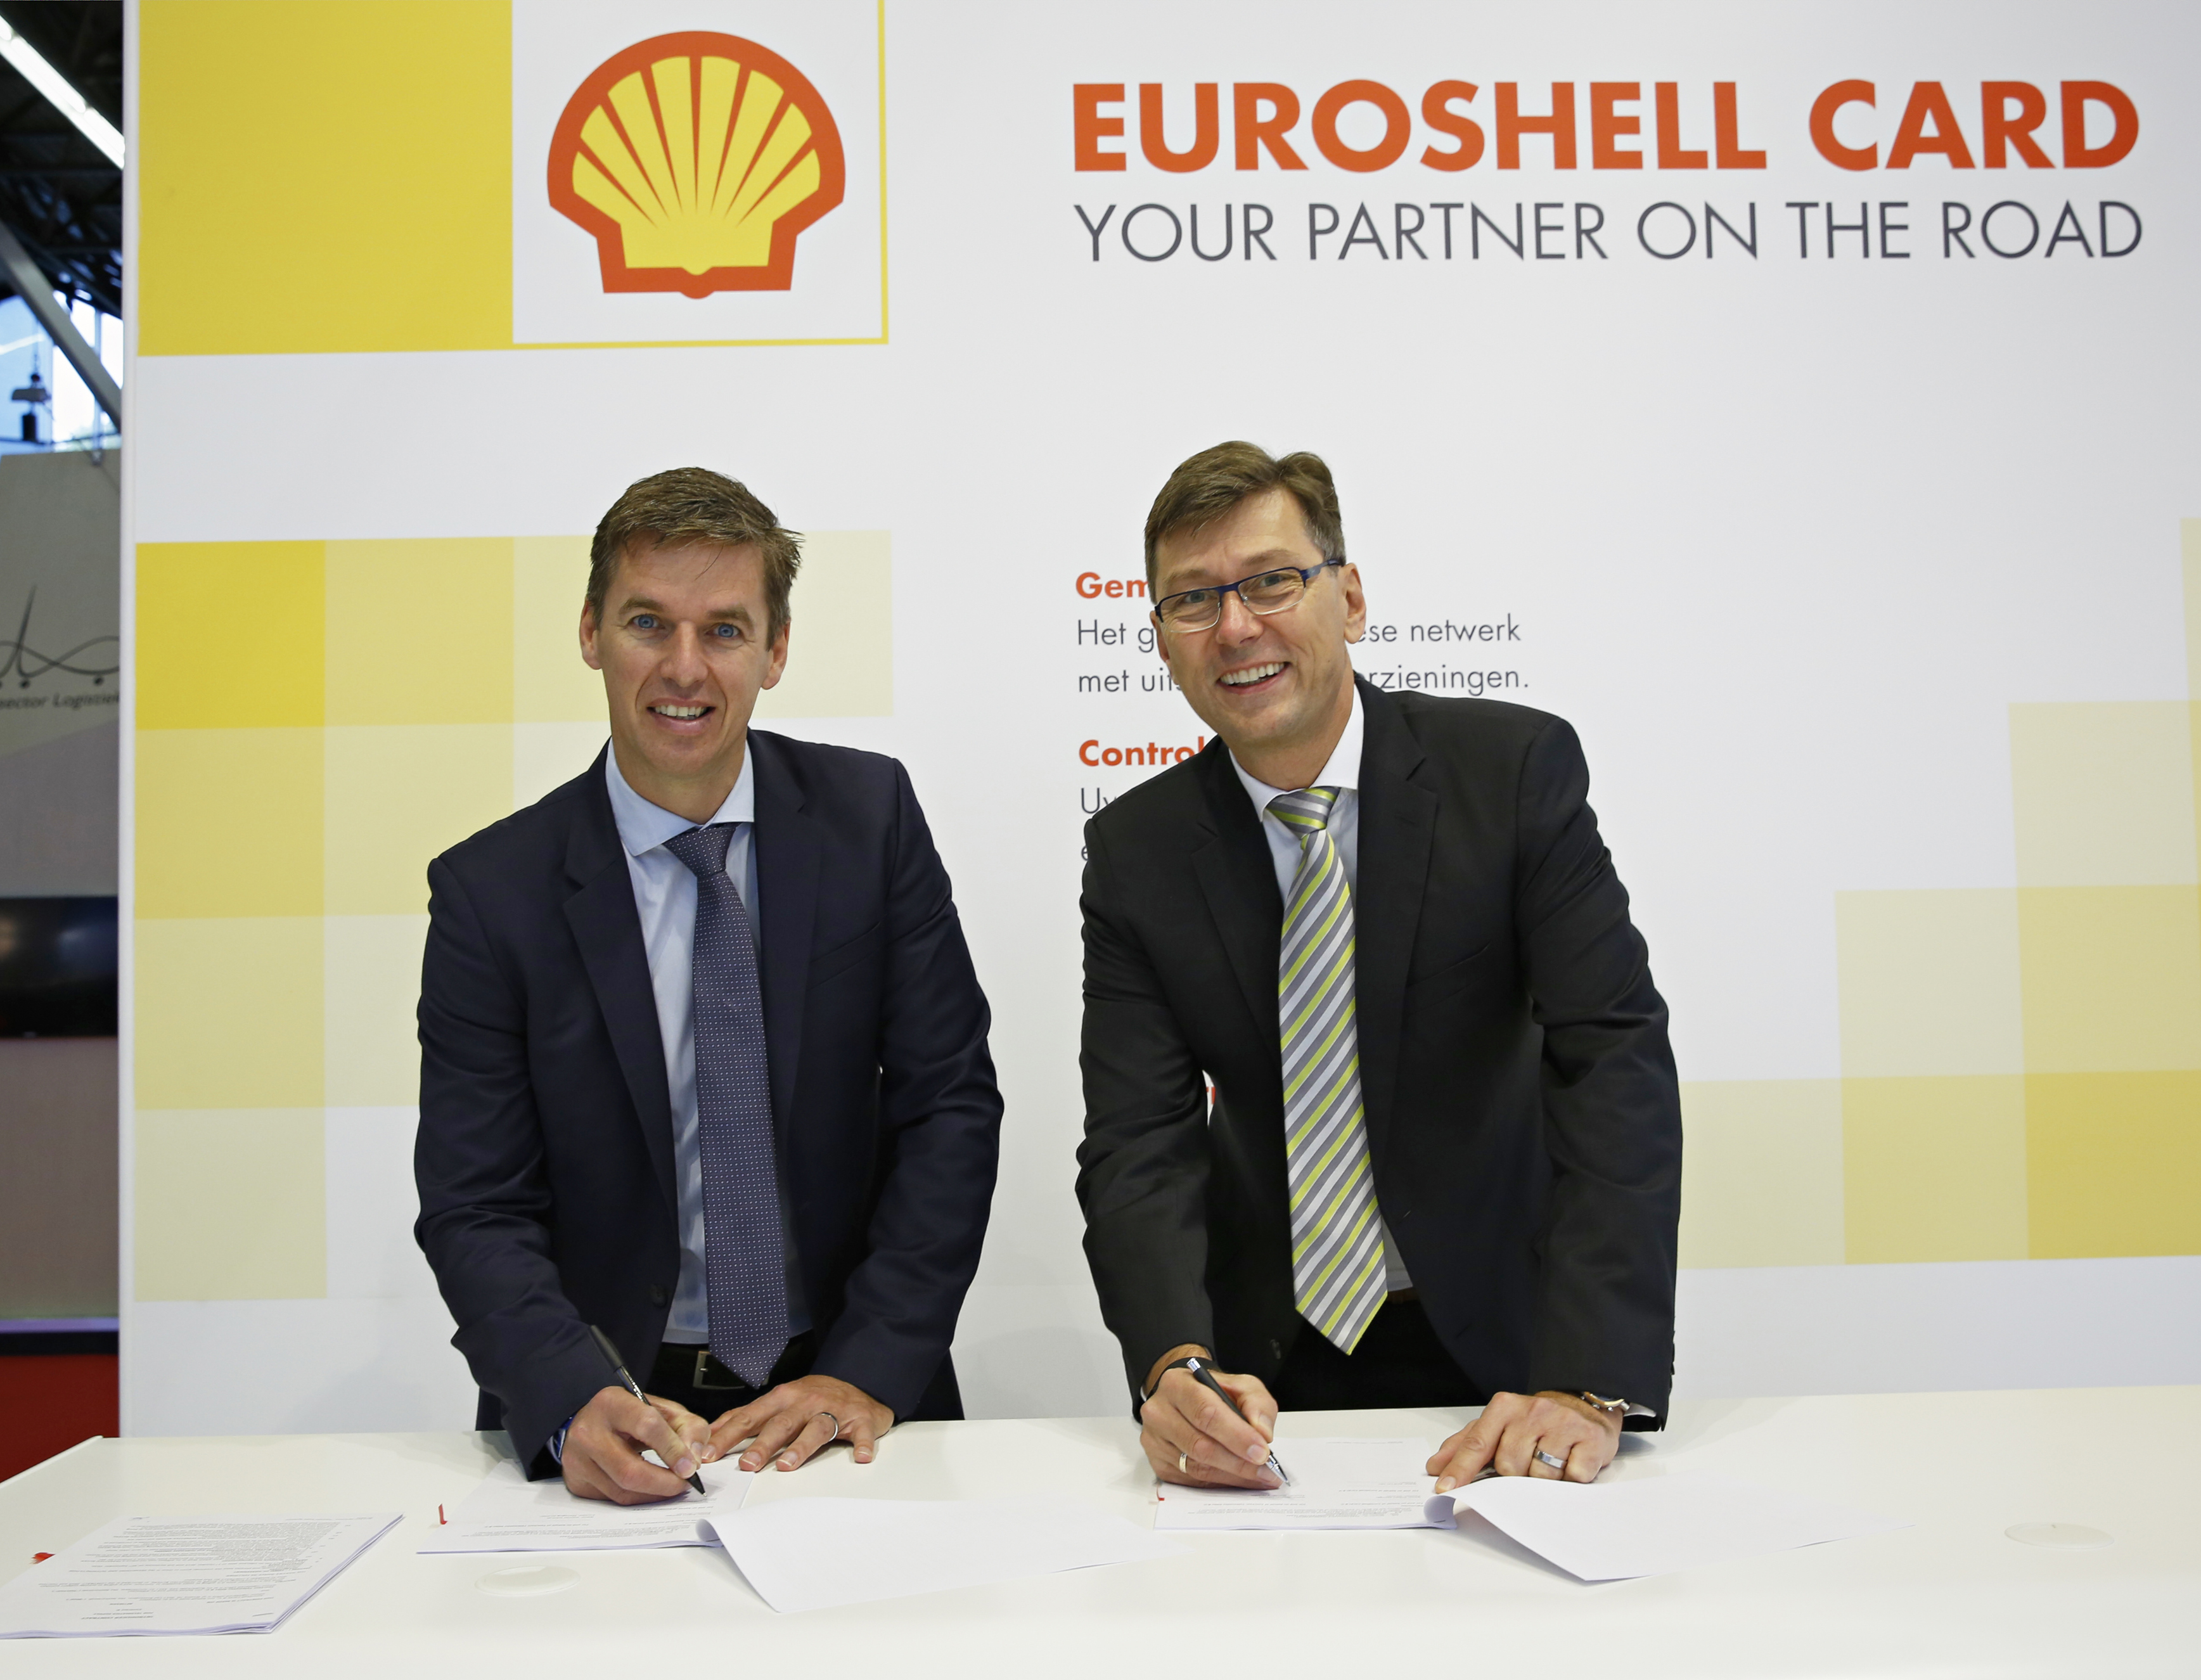 tomtom telematics and shell join forces to help business fleets